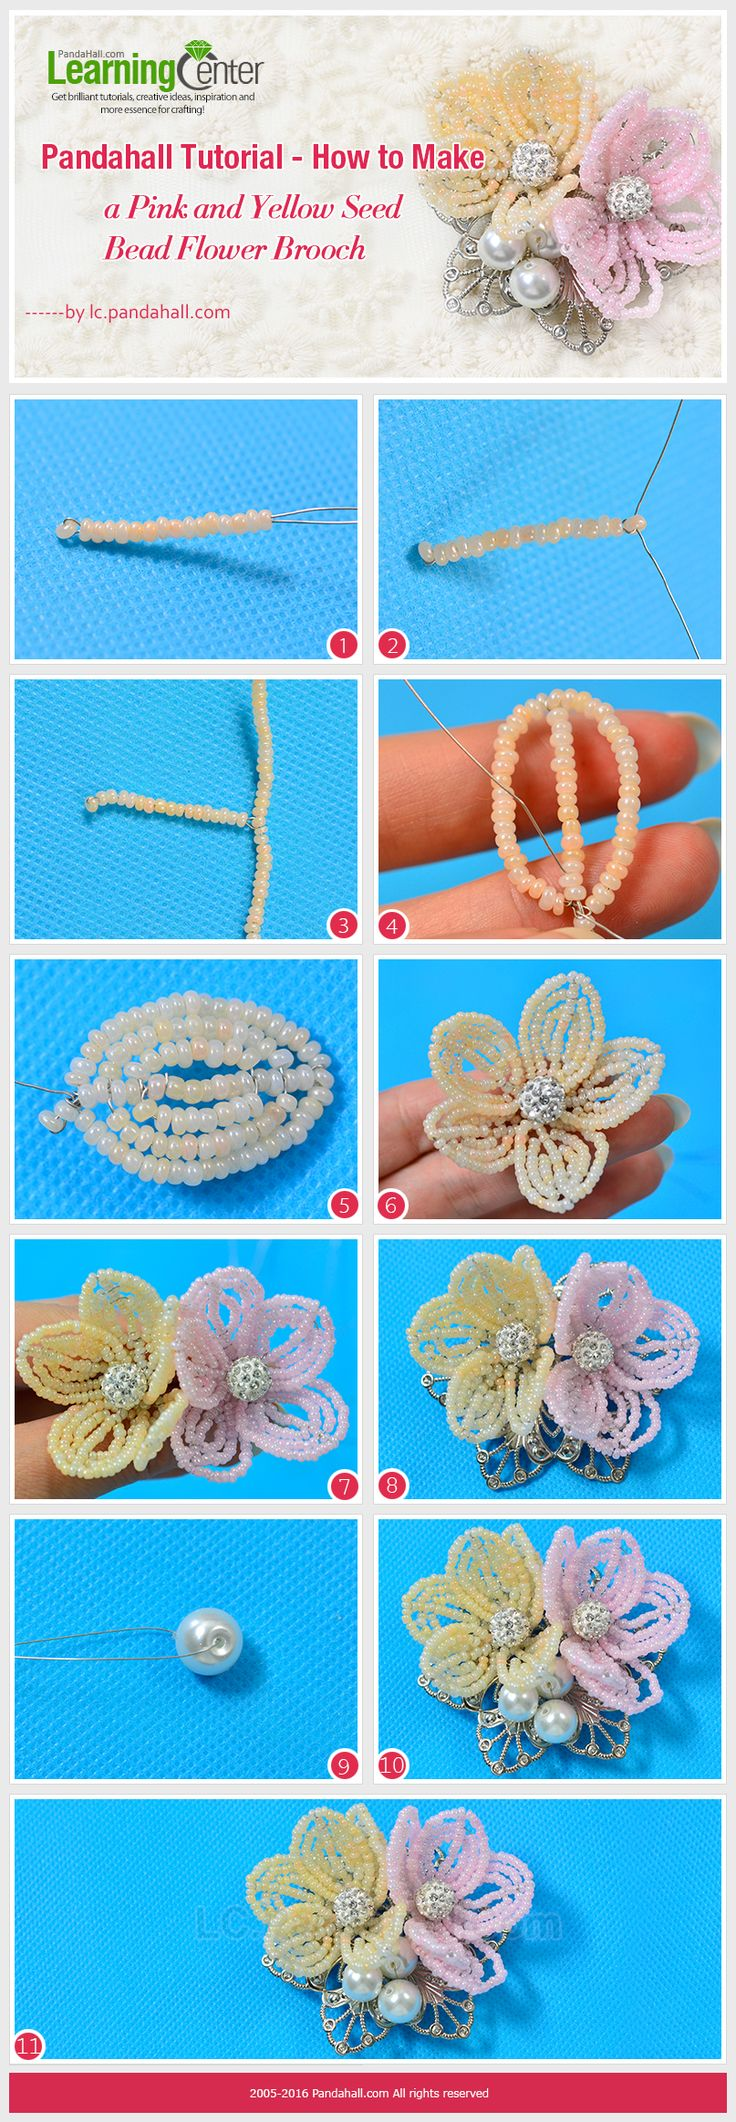 Pandahall Tutorial - How to Make a Pink and Yellow Seed Bead Flower Brooch